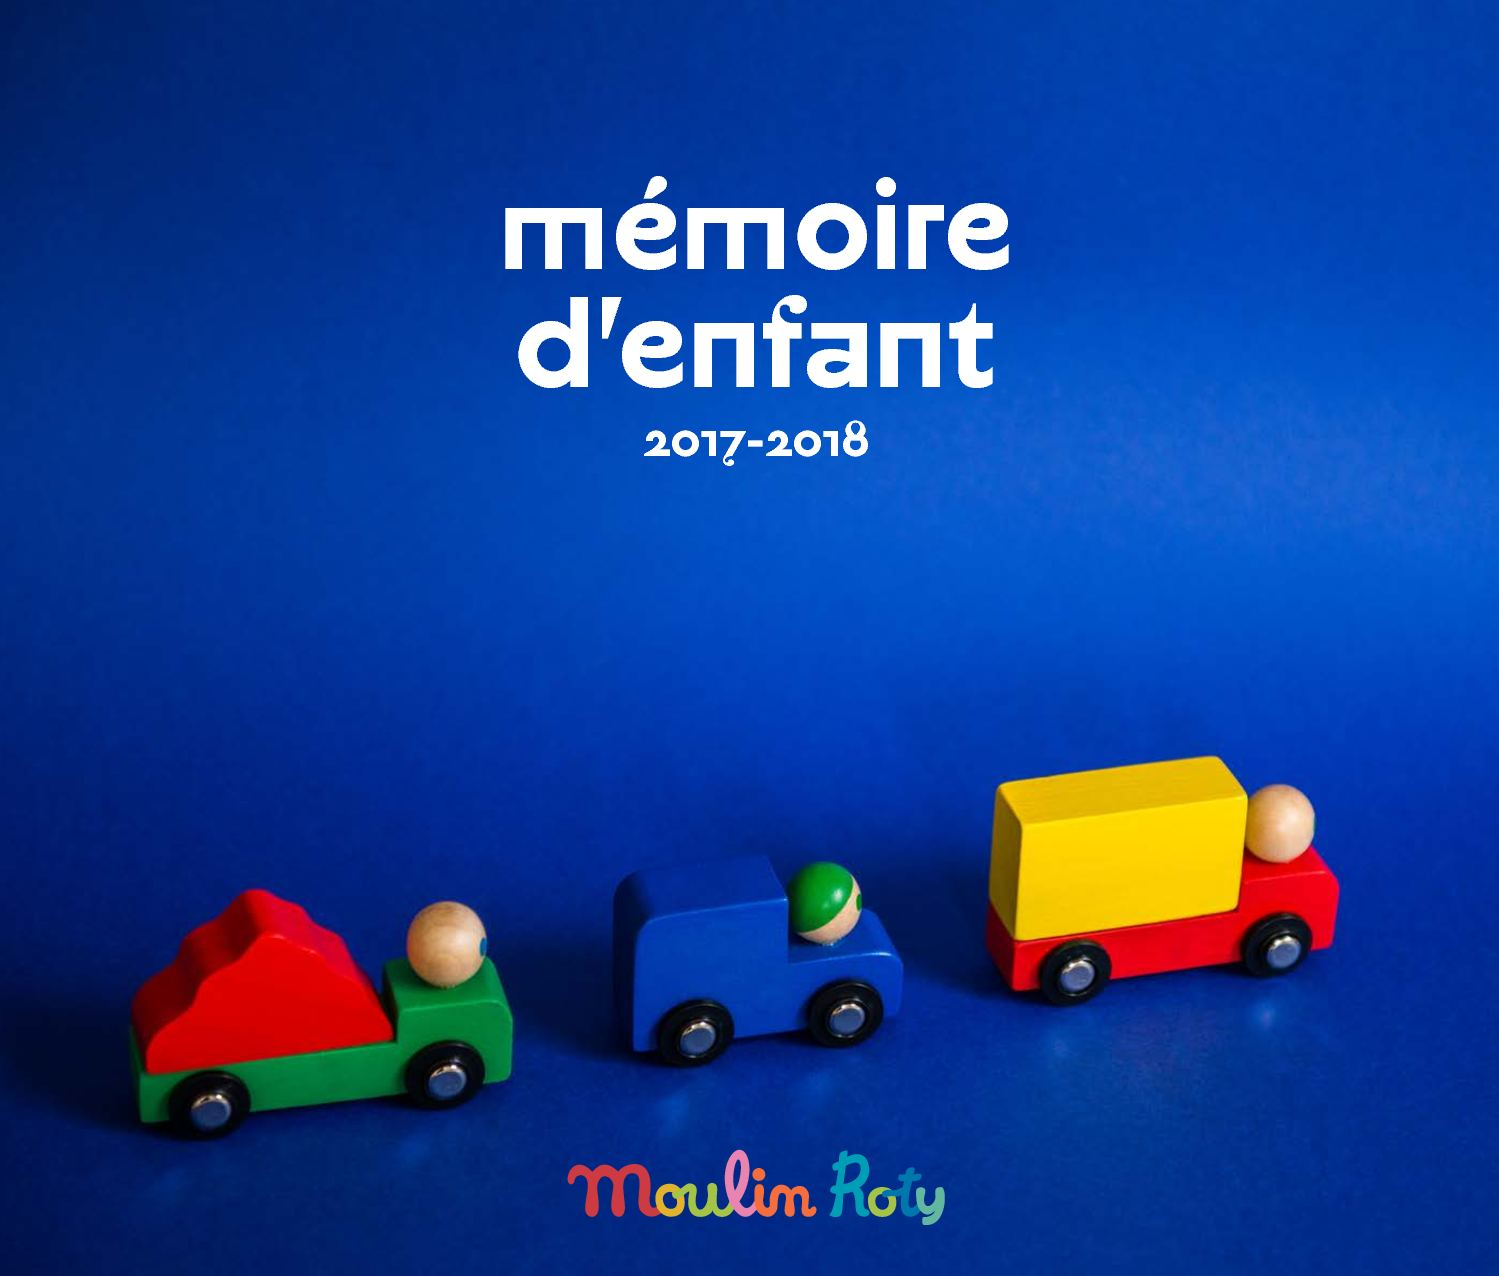 Memoire d'enfant Catalogo Moulin Roty 2017 2018